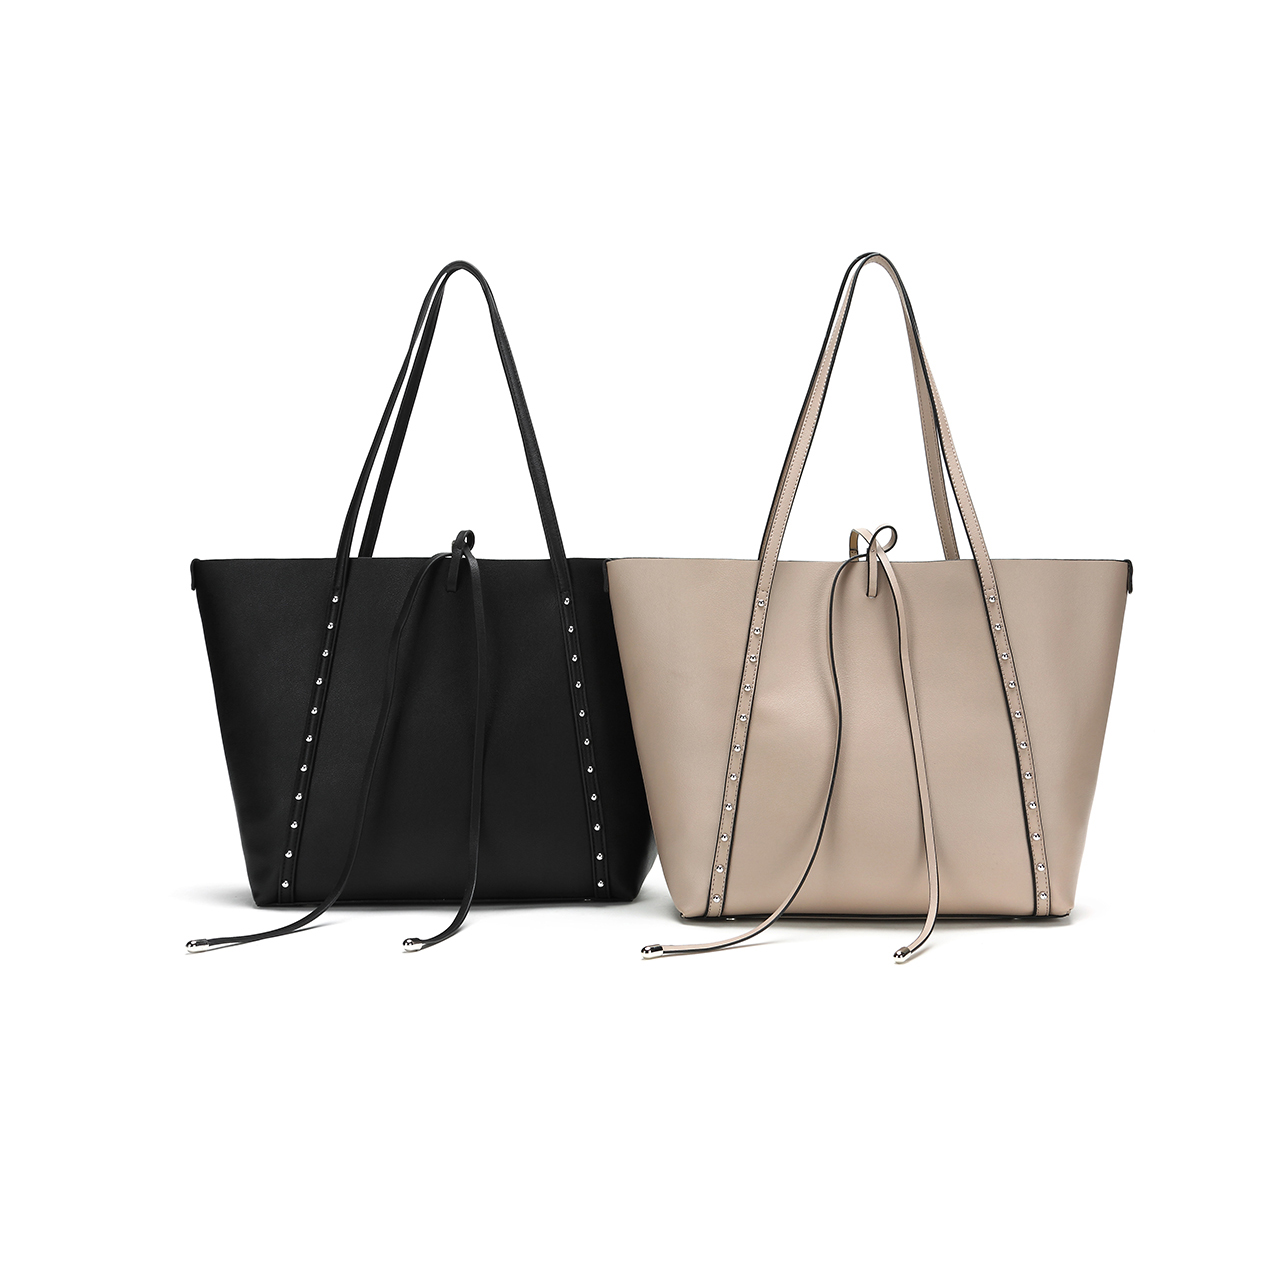 elegant ladies leather handbags tote online for date-1